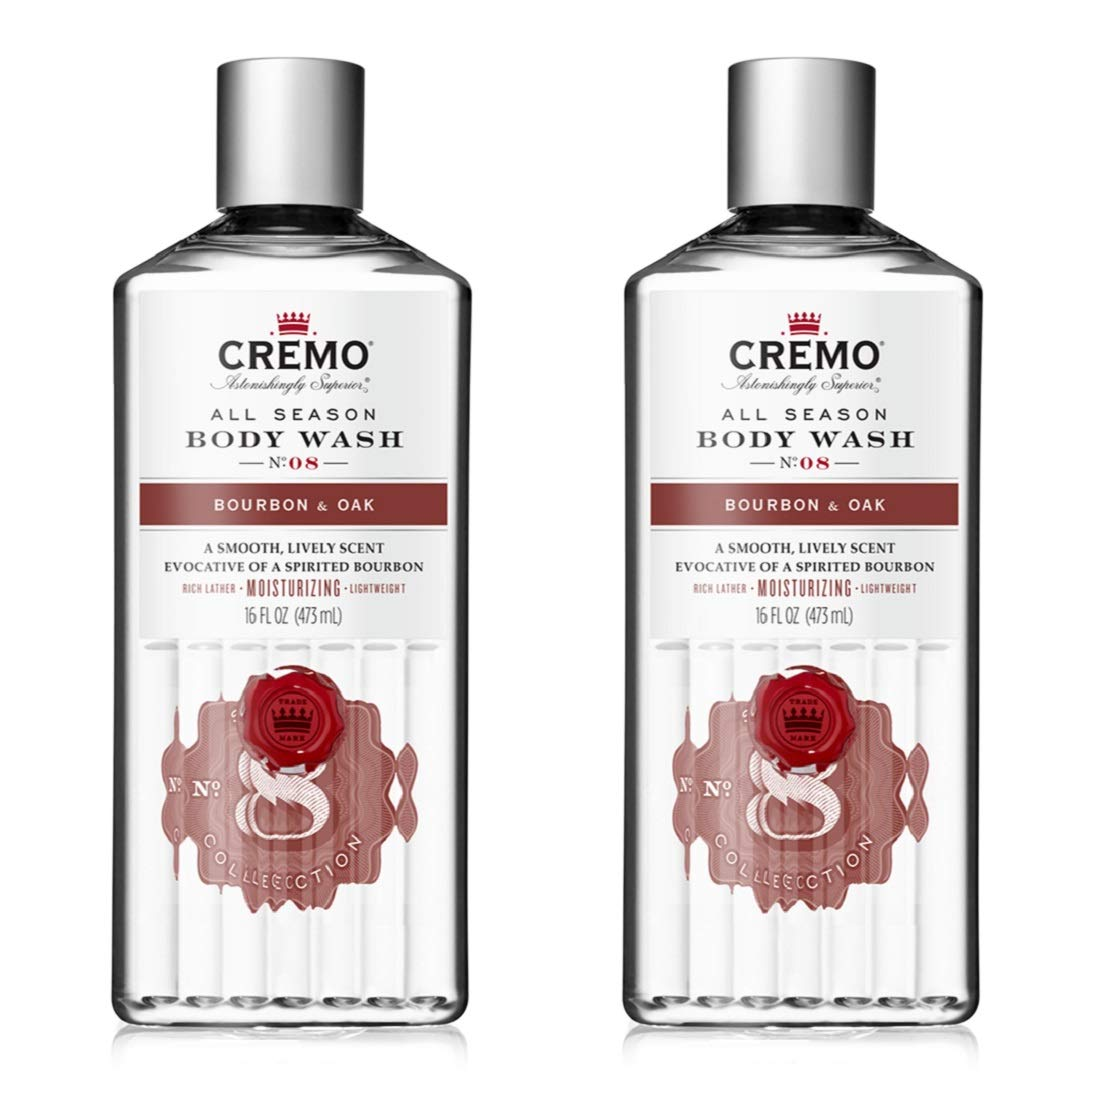 Cremo Rich-Lathering Body Wash A Sophisticated Blend of Distiller's Spice, Fine Bourbon and White Oak, 16 Oz, (2-Pack)